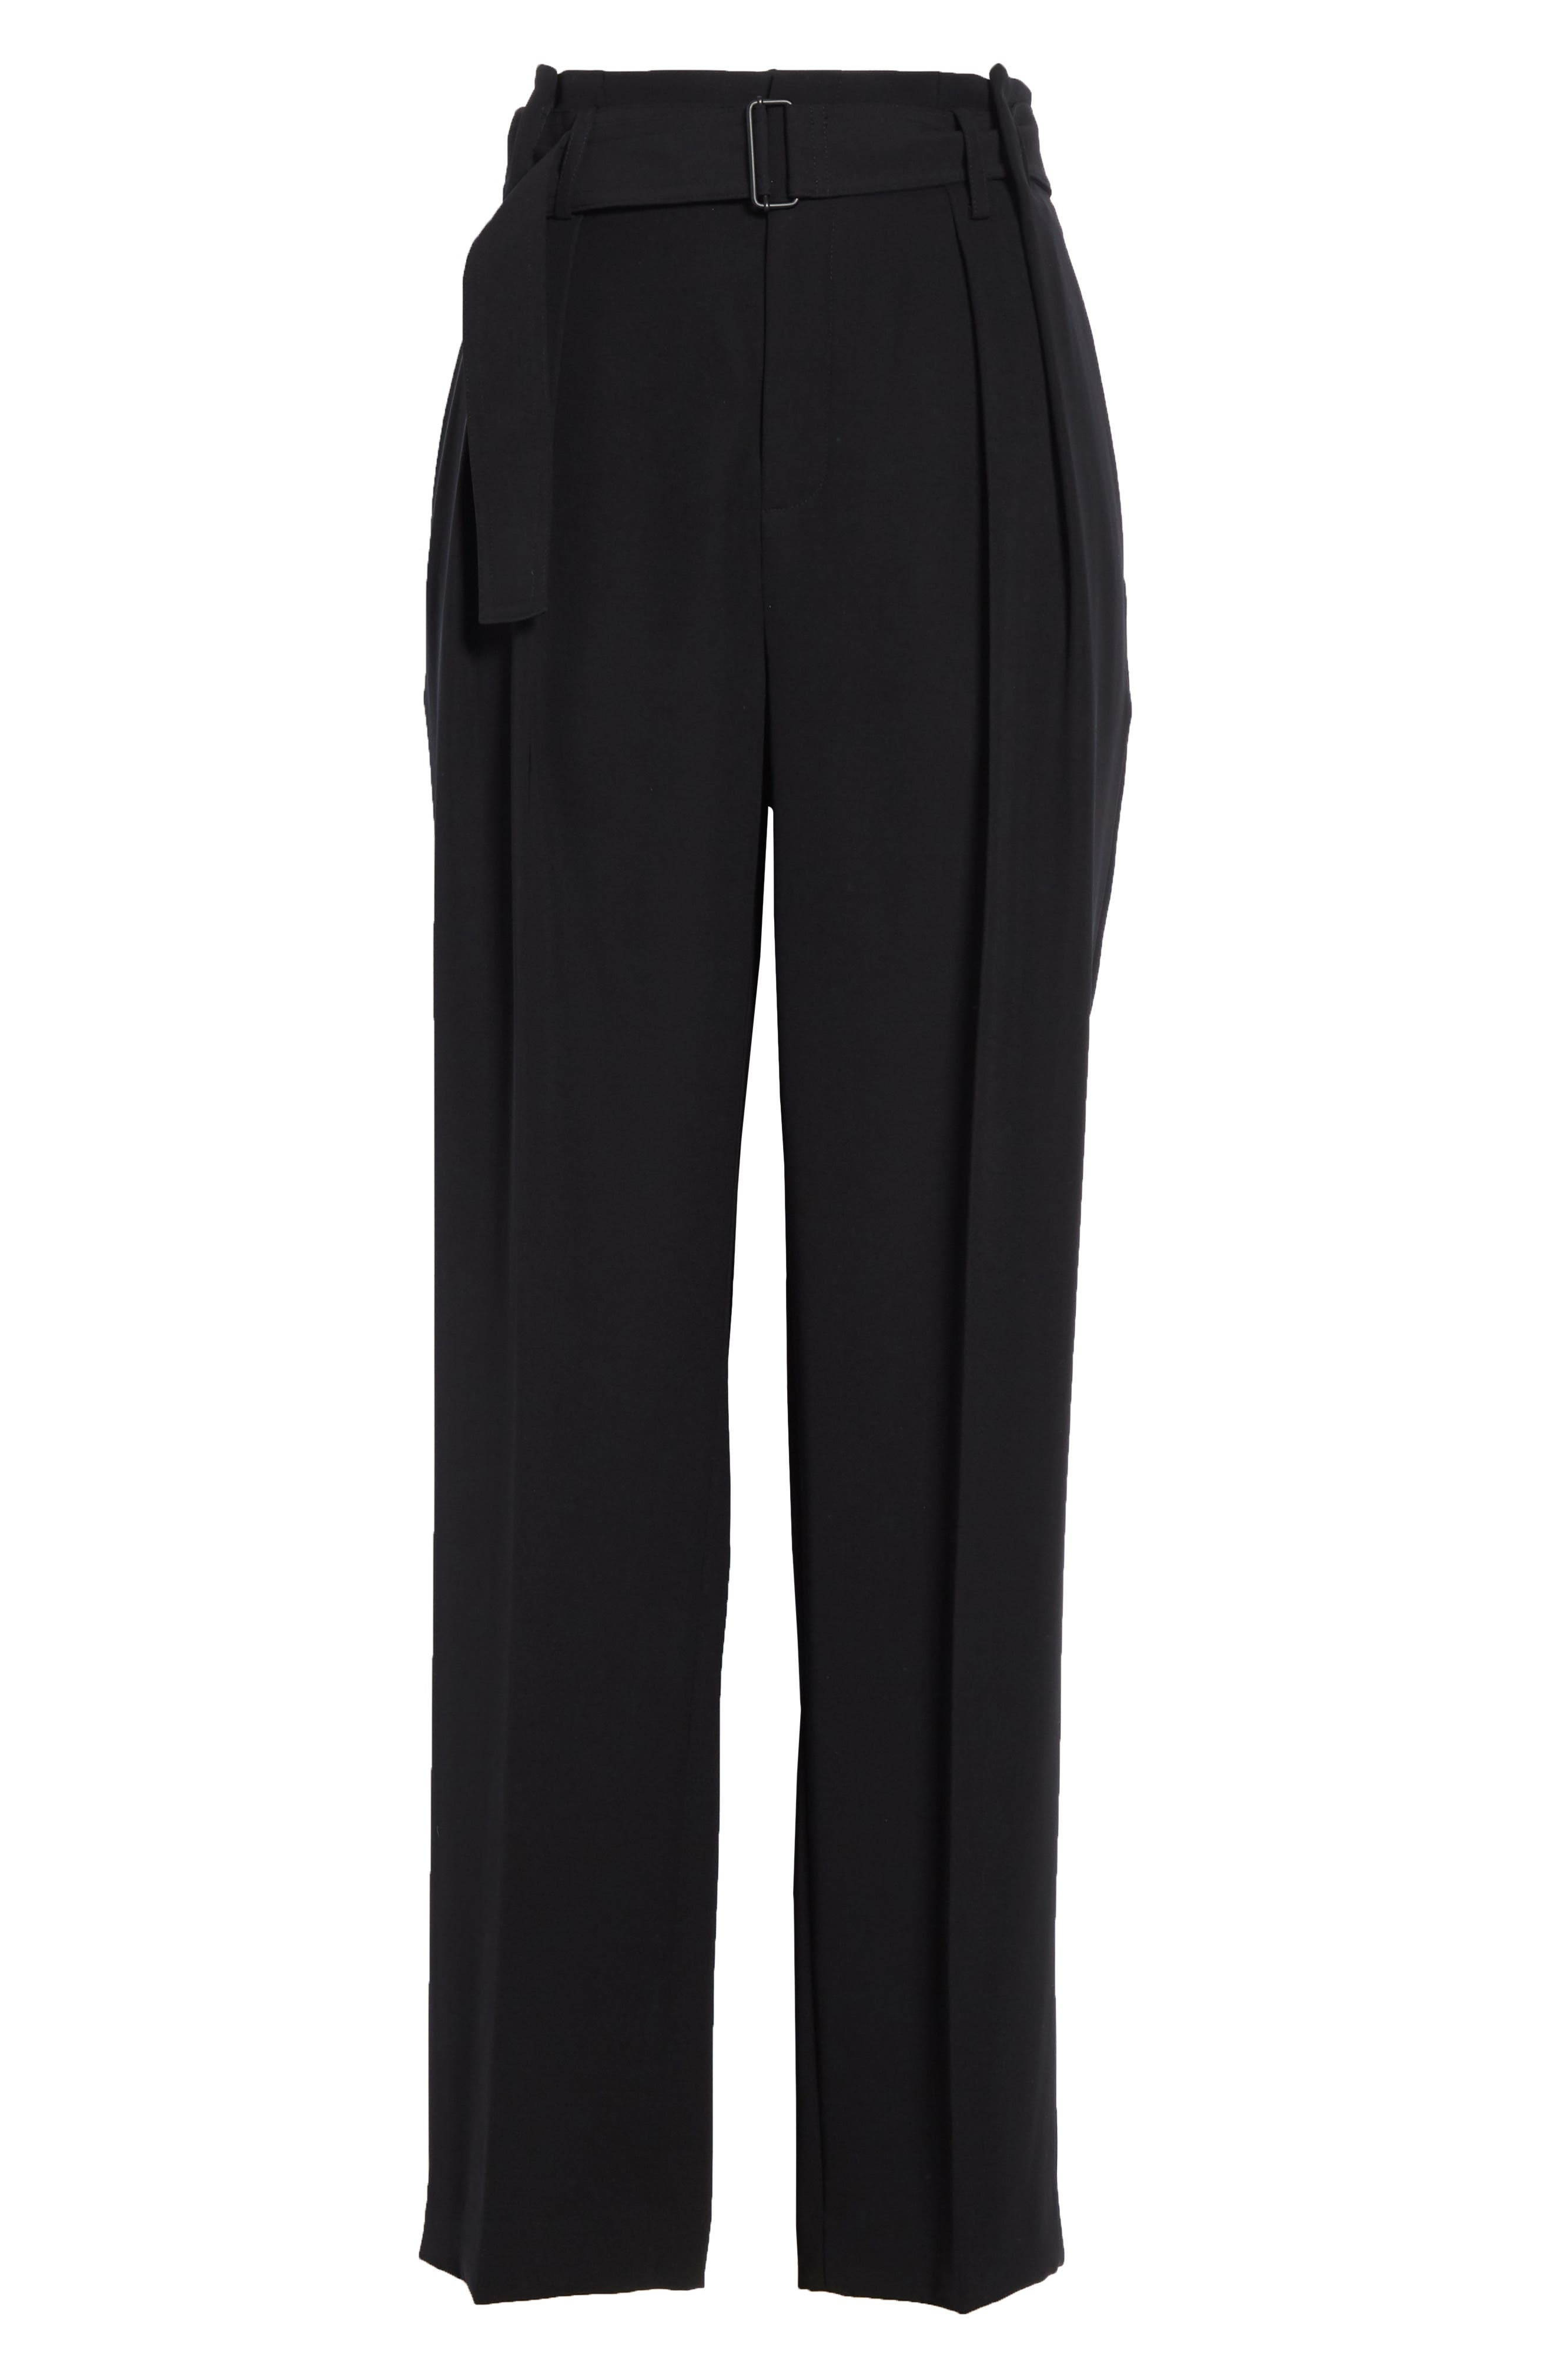 VINCE,                             Belted Wide Leg Pants,                             Alternate thumbnail 6, color,                             BLACK